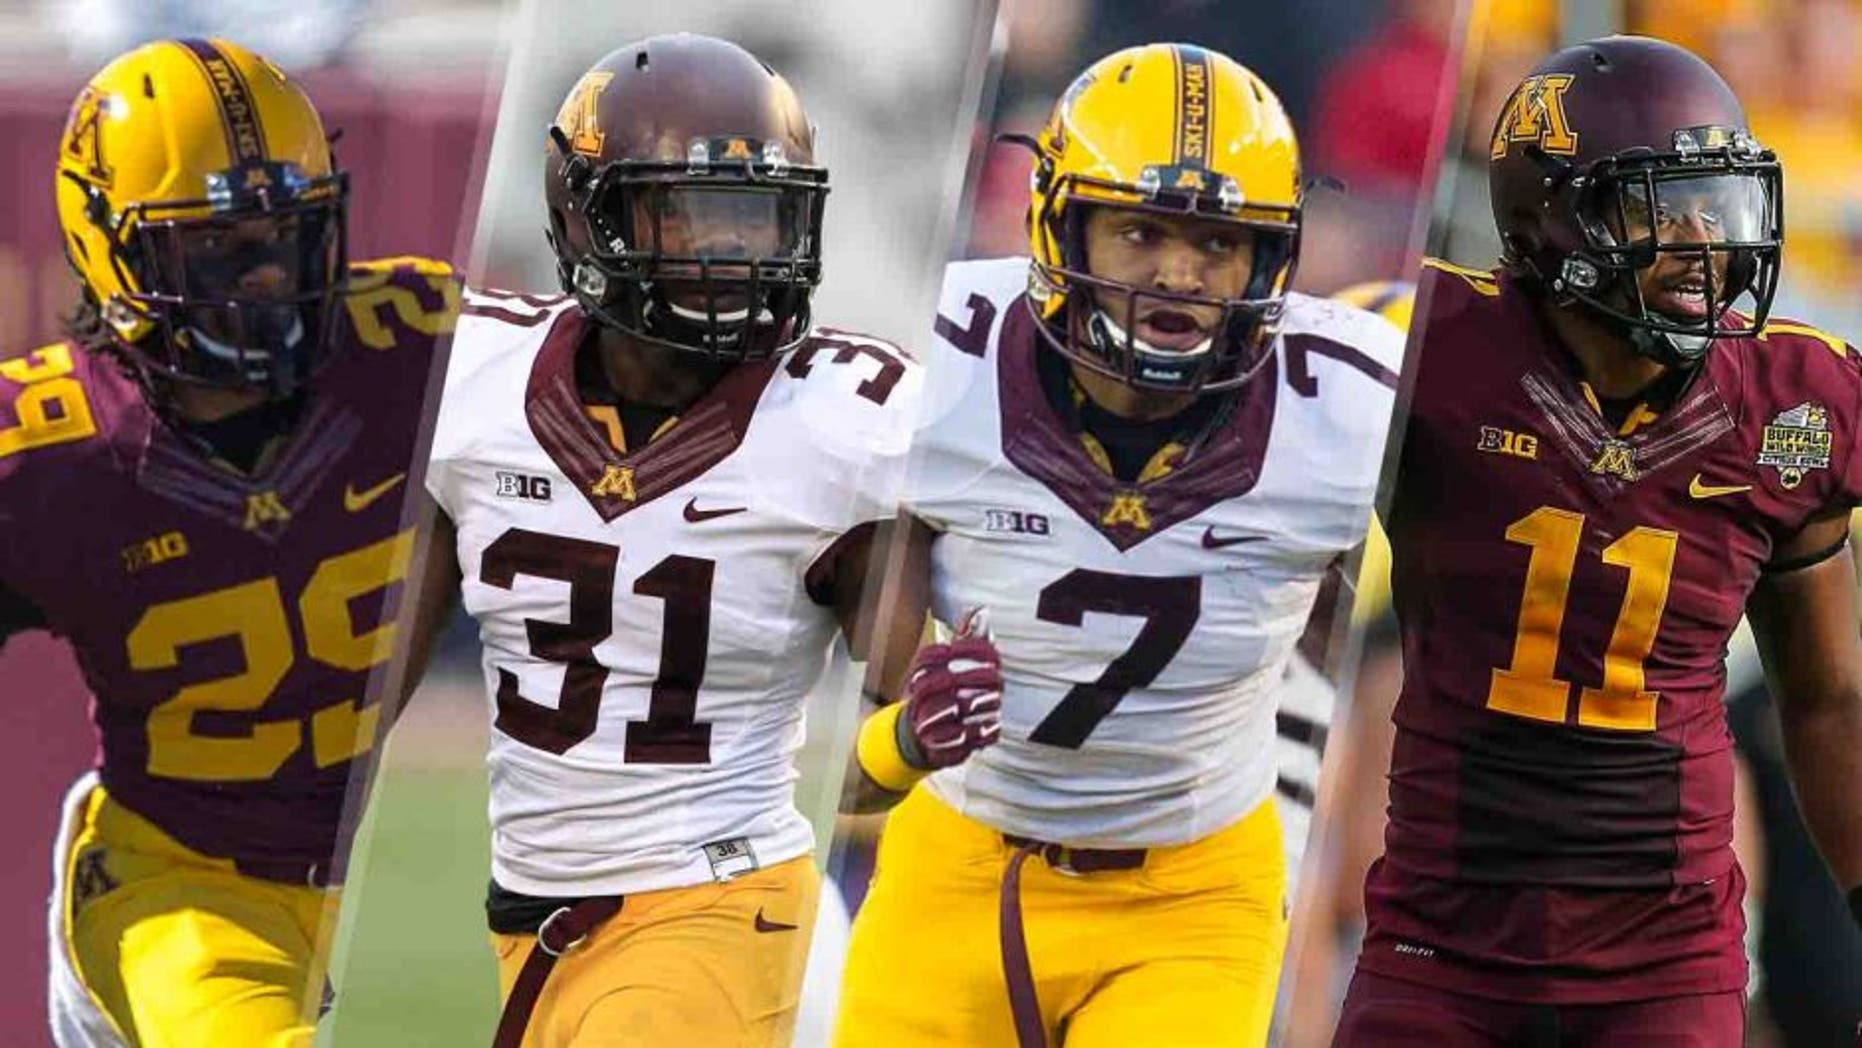 The Gophers have a group of legitimate NFL prospects manning the four defensive back positions: cornerbacks Briean Boddy-Calhoun and Eric Murray and safeties Damarius Travis and Antonio Johnson.